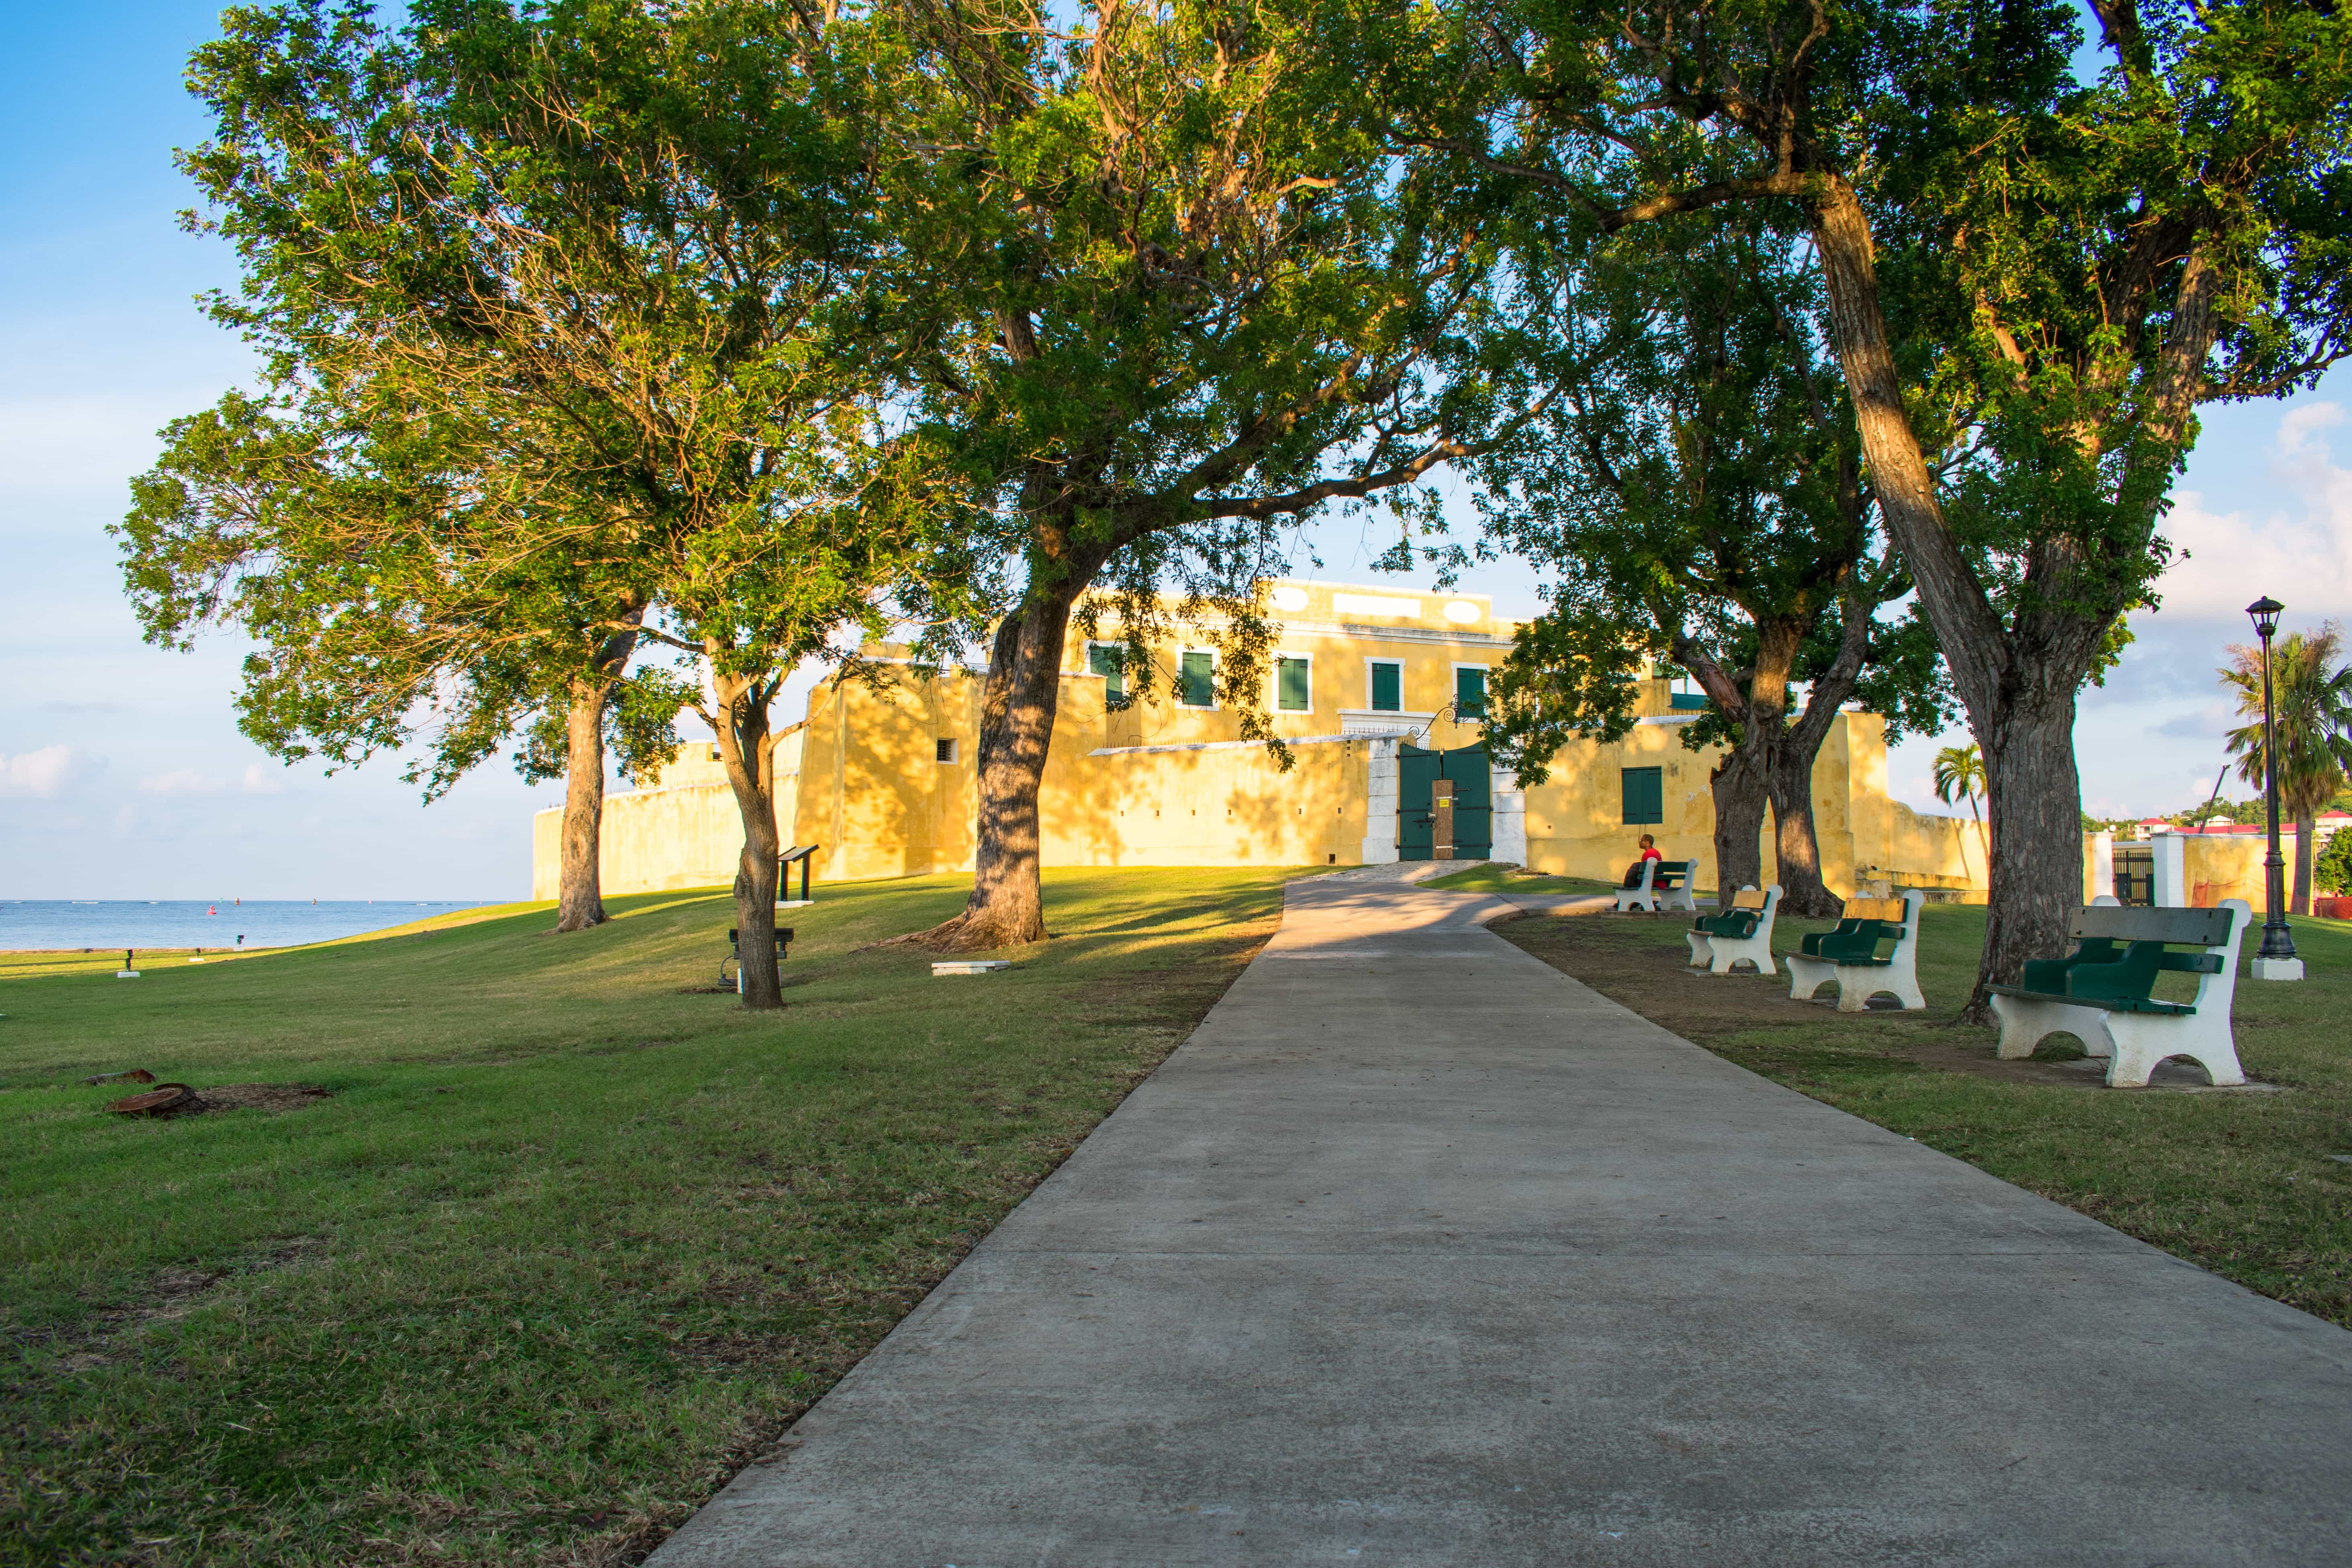 History and natural beauty abound in Christiansted, St. Croix | SBPR